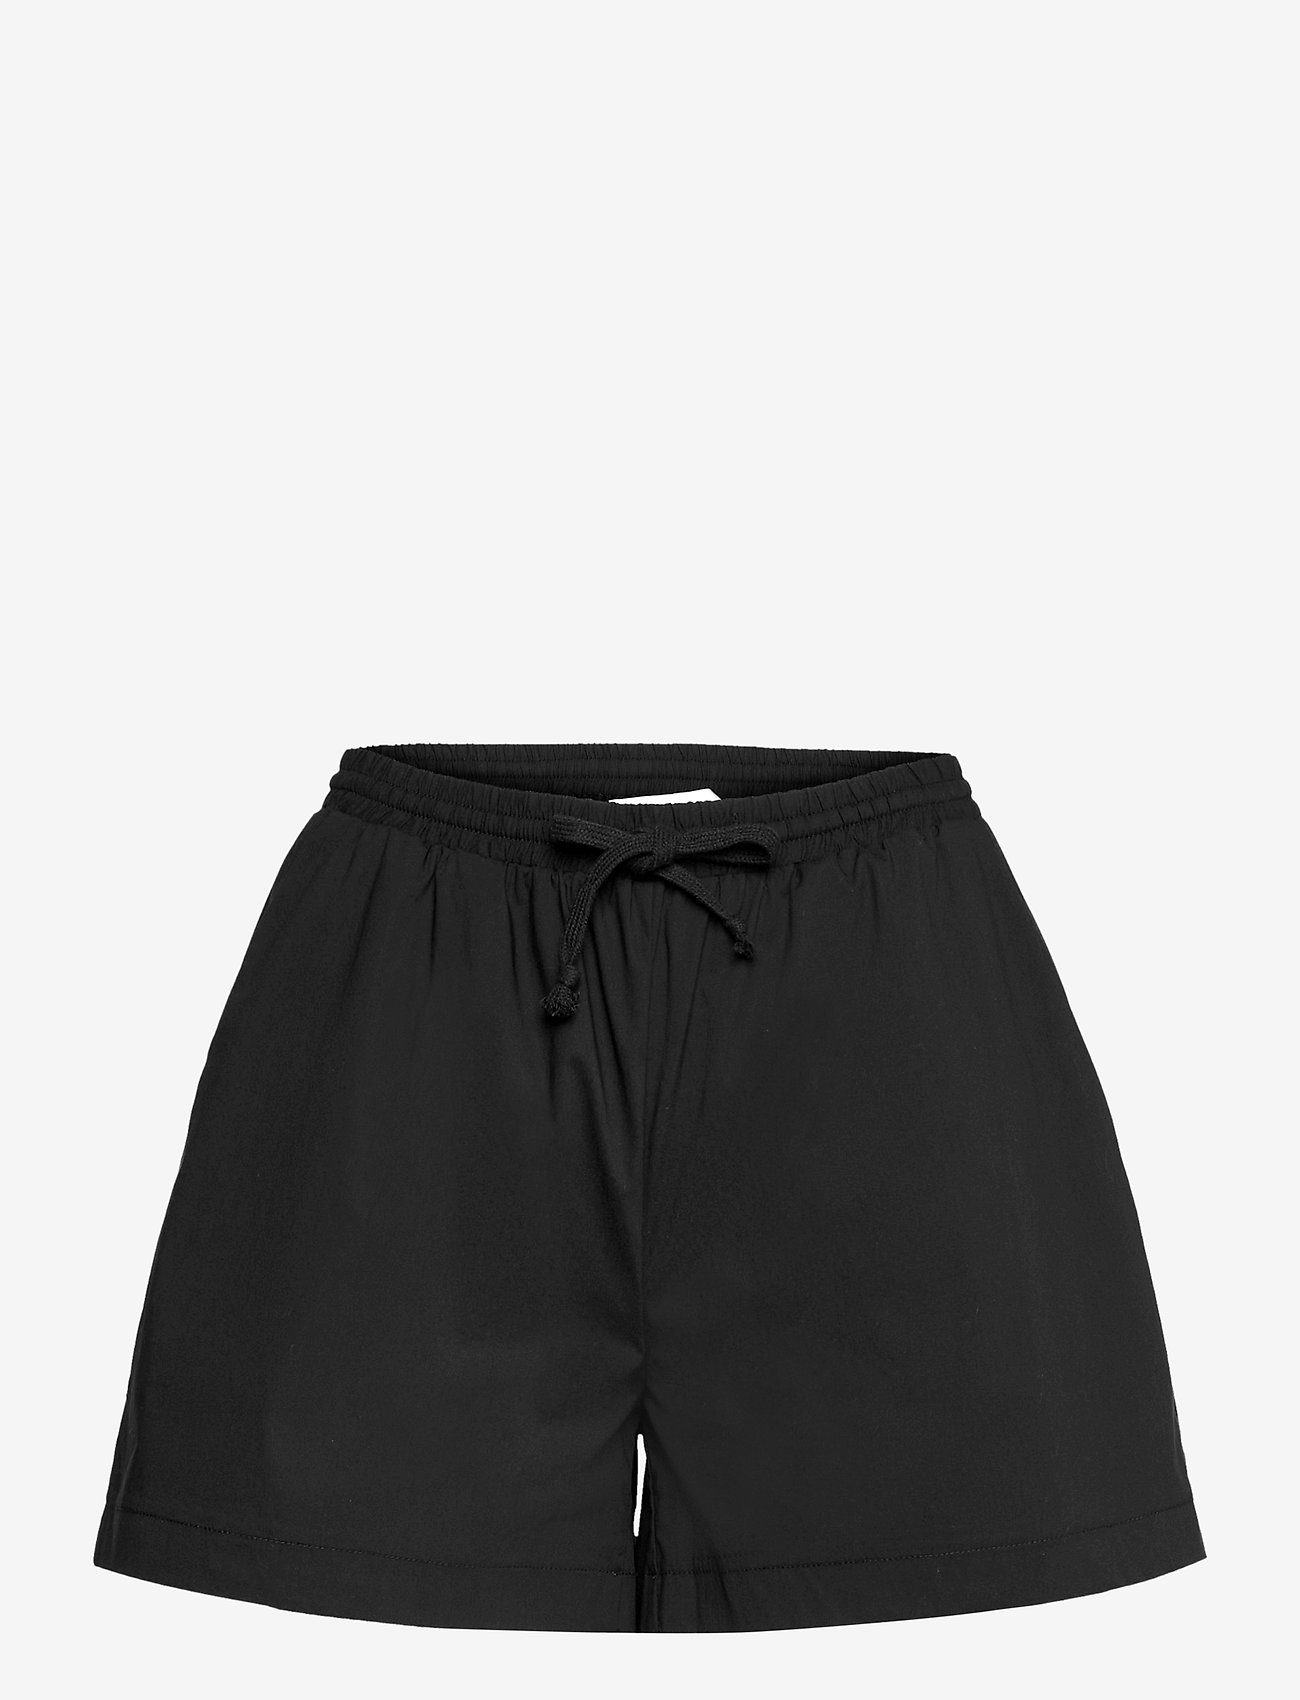 Fall Winter Spring Summer - Endless Summer - casual shorts - anthracite black - 0